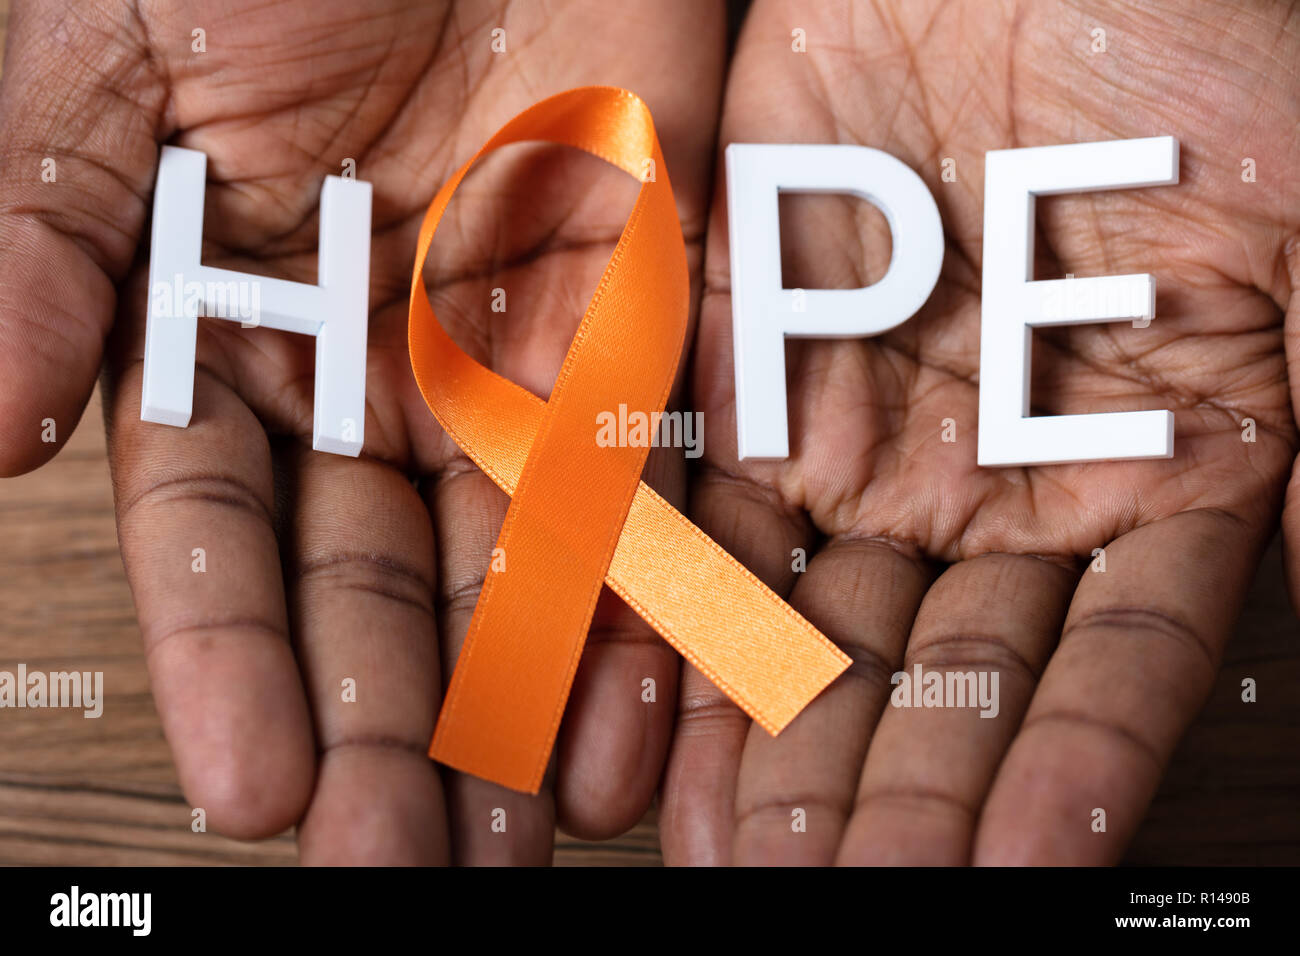 Person's Hand Holding Ribbon With Hope Text To Support Kidney Cancer And Leukemia Awareness - Stock Image